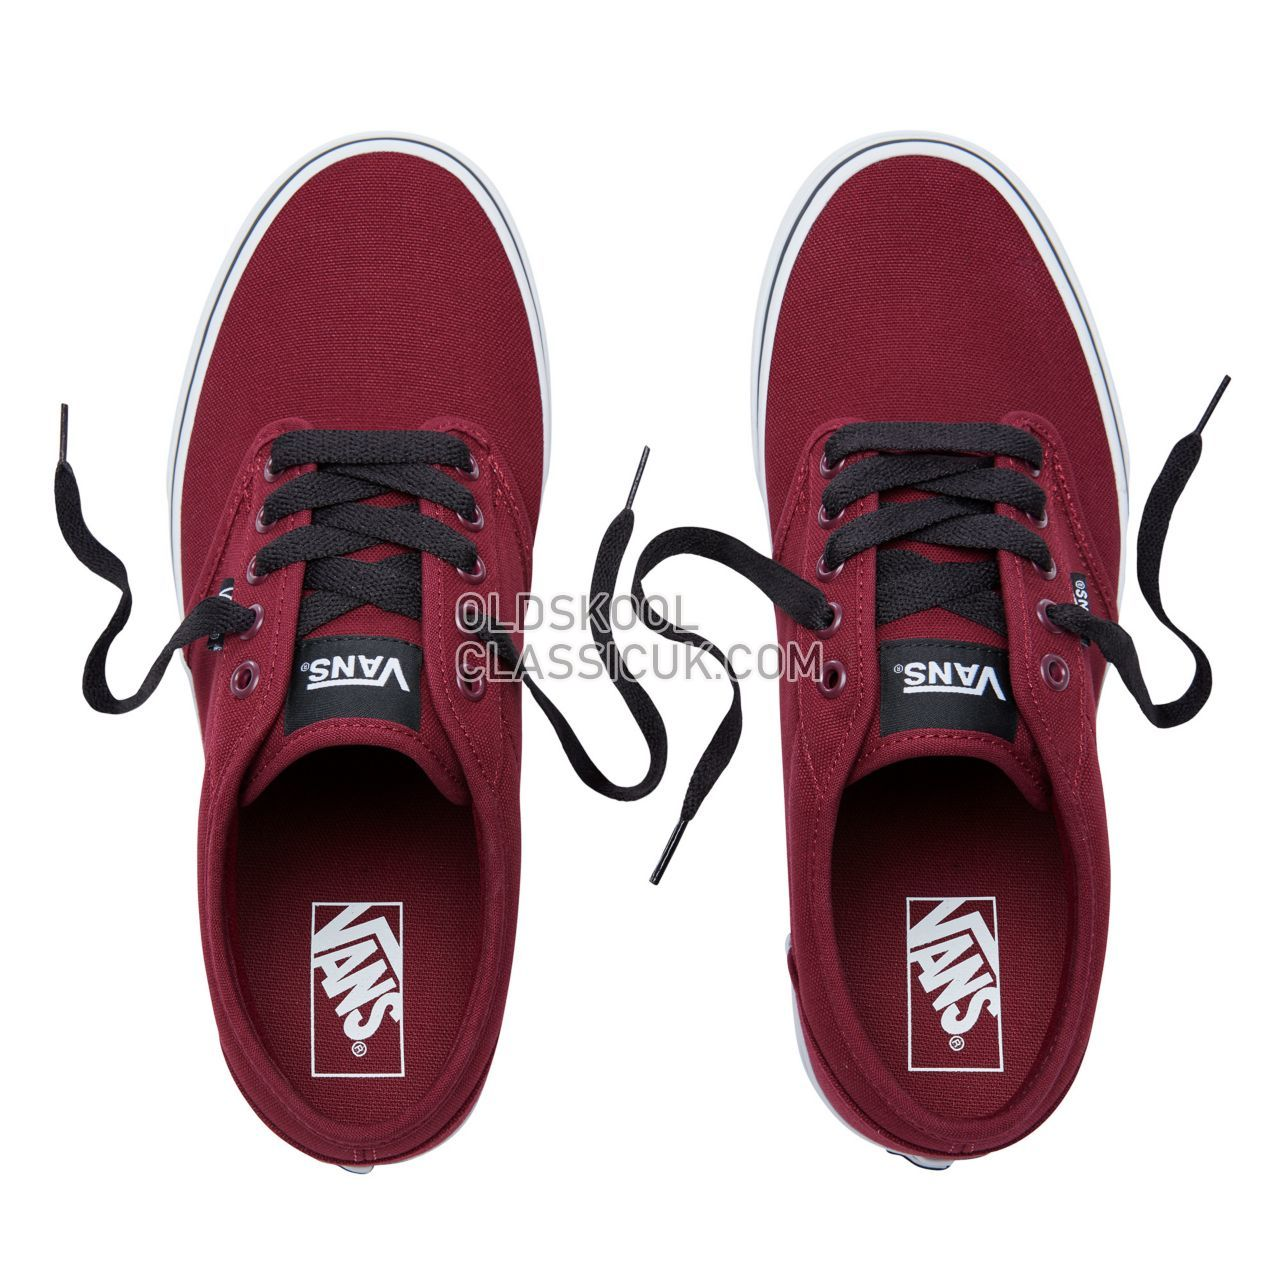 Vans Atwood Sneakers Mens Oxblood/White VN000TUY8J3 Shoes